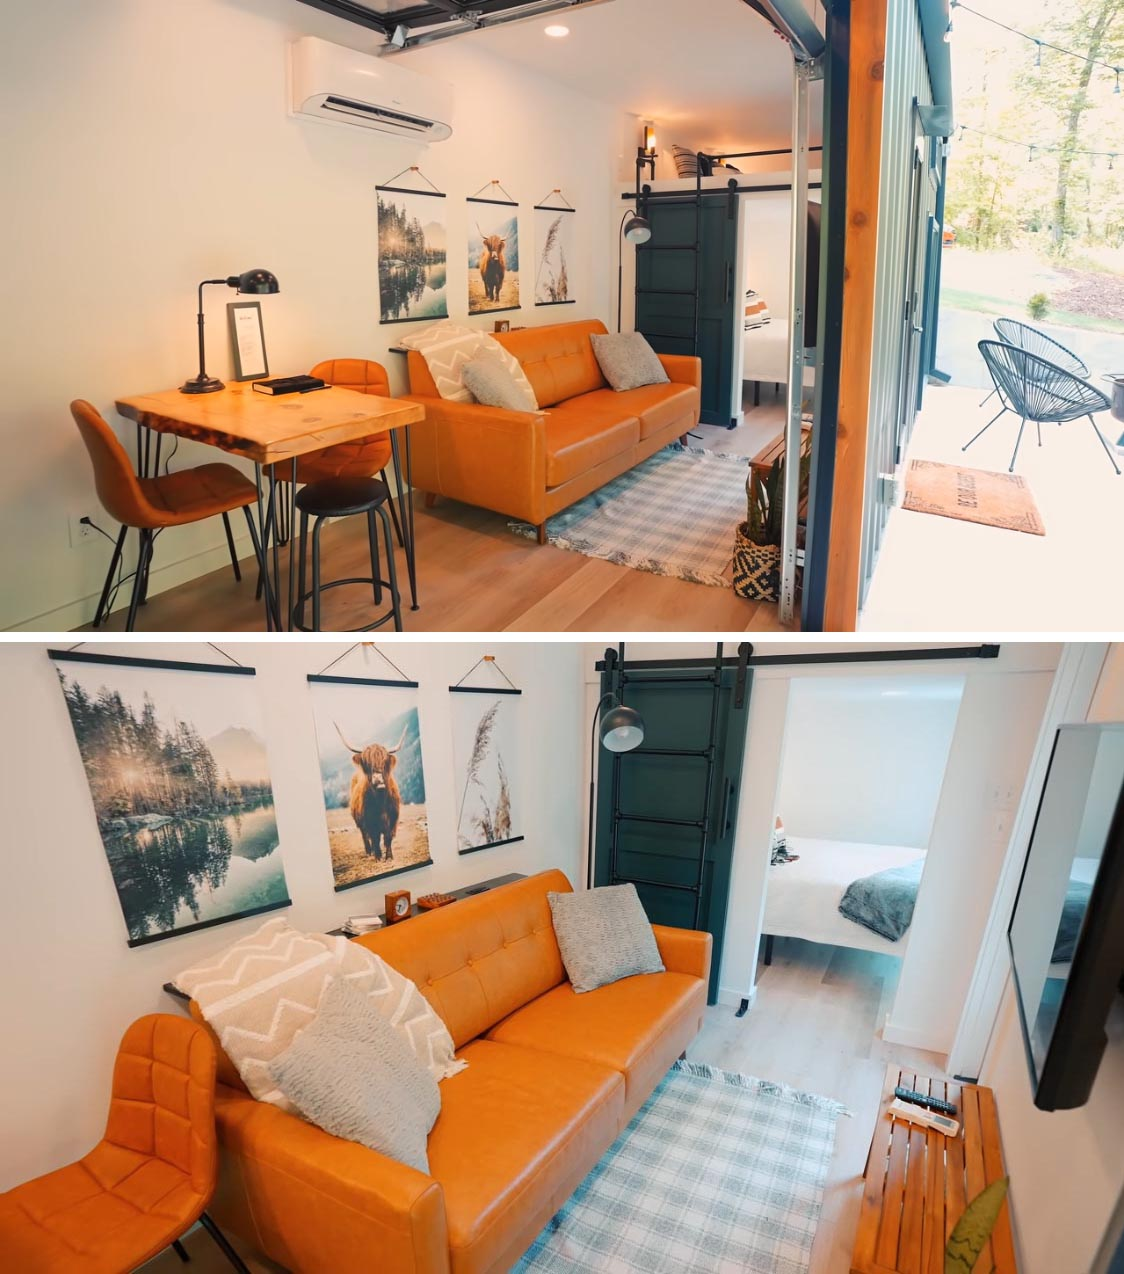 A modern shipping container home with small living room, dining area, a bedroom, and sleeping loft.